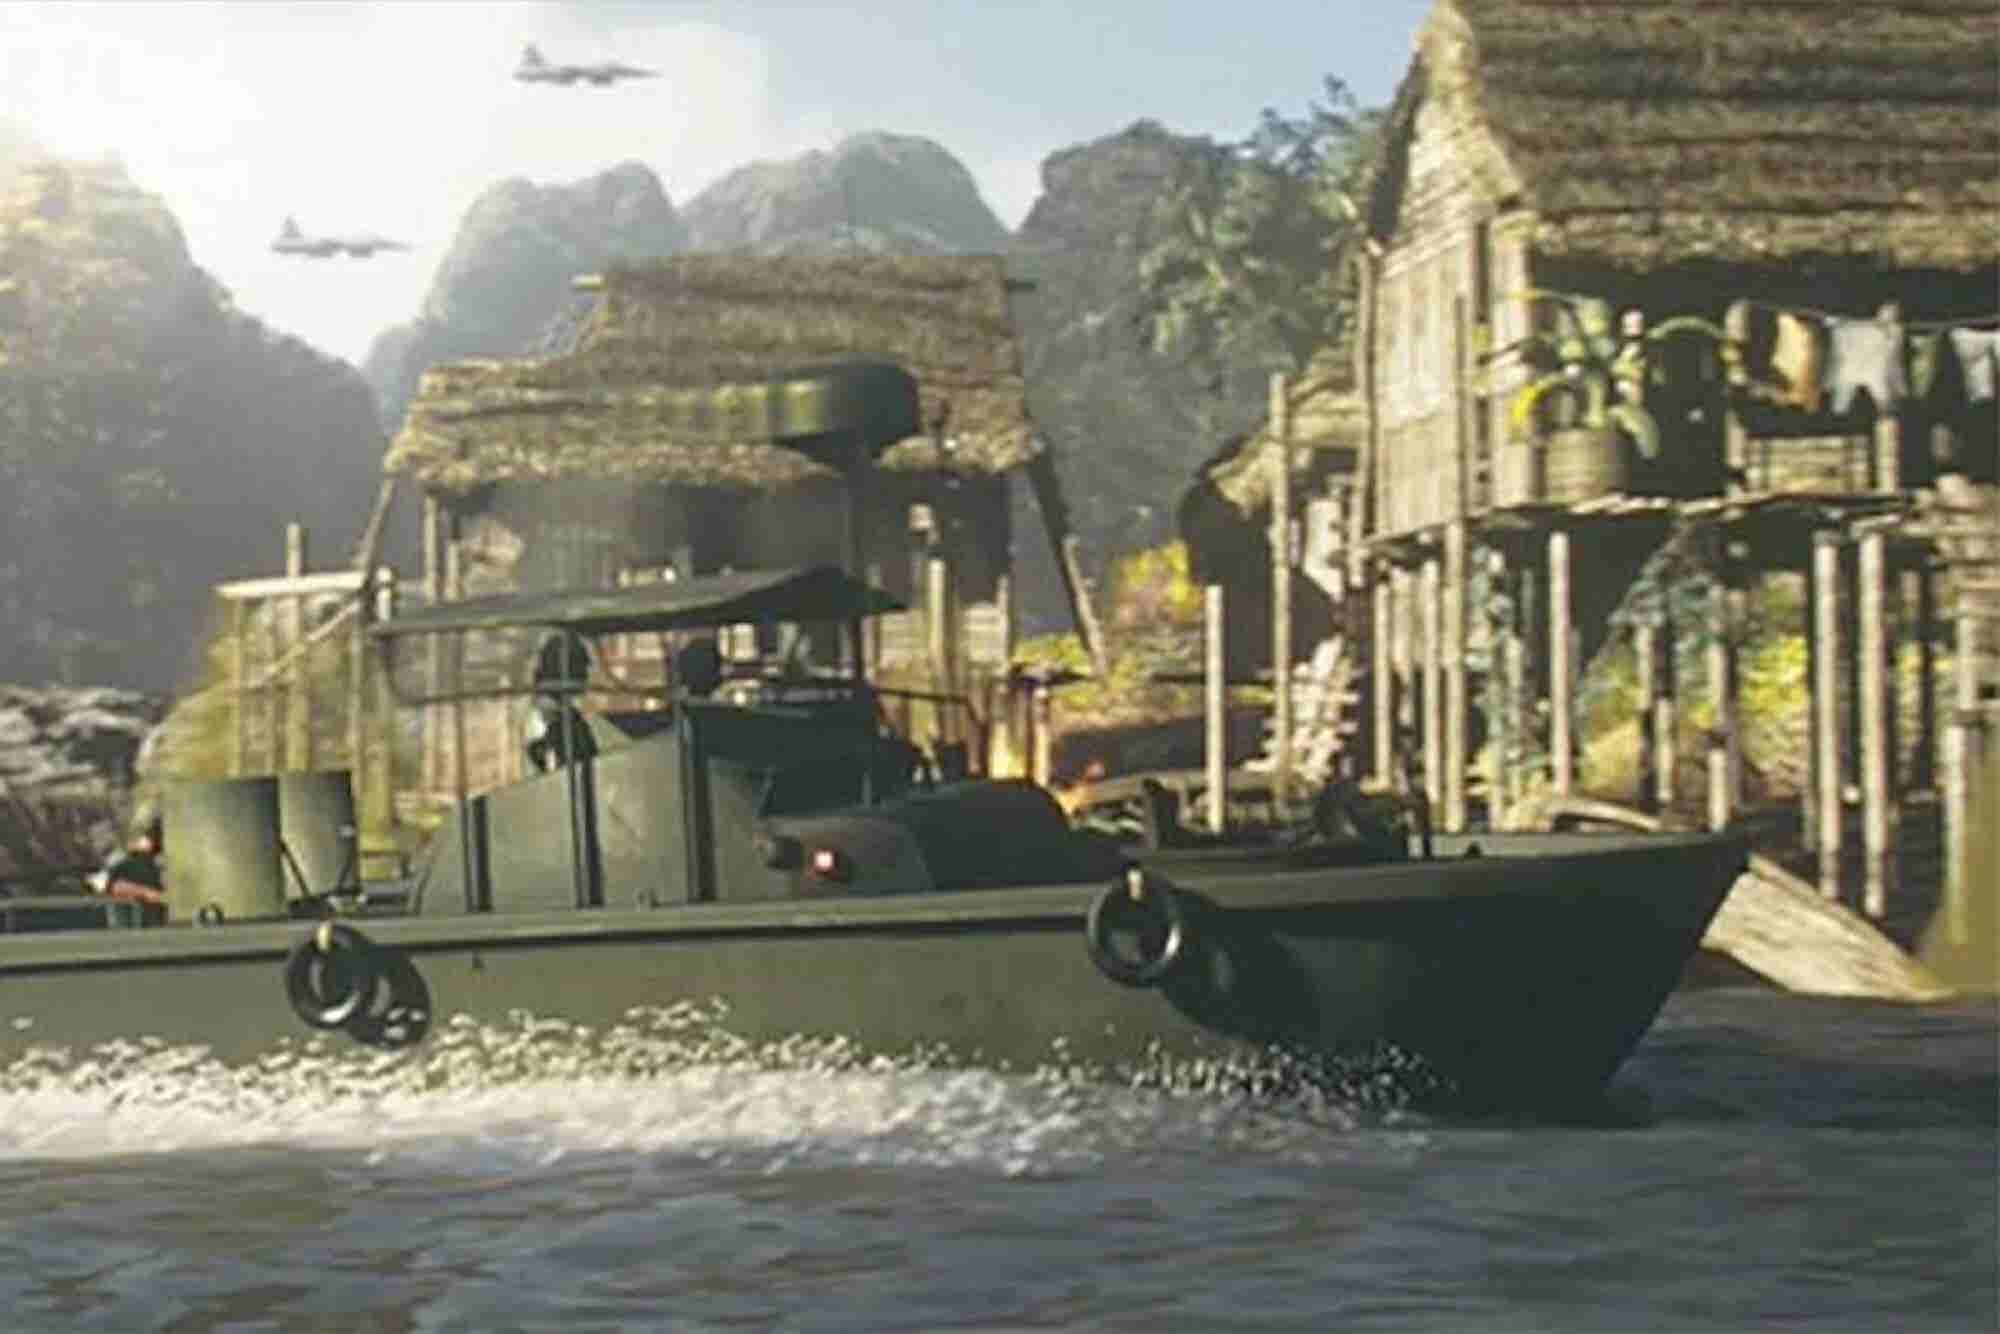 Want an 'Apocalypse Now' Video Game? Pony Up on Kickstarter.